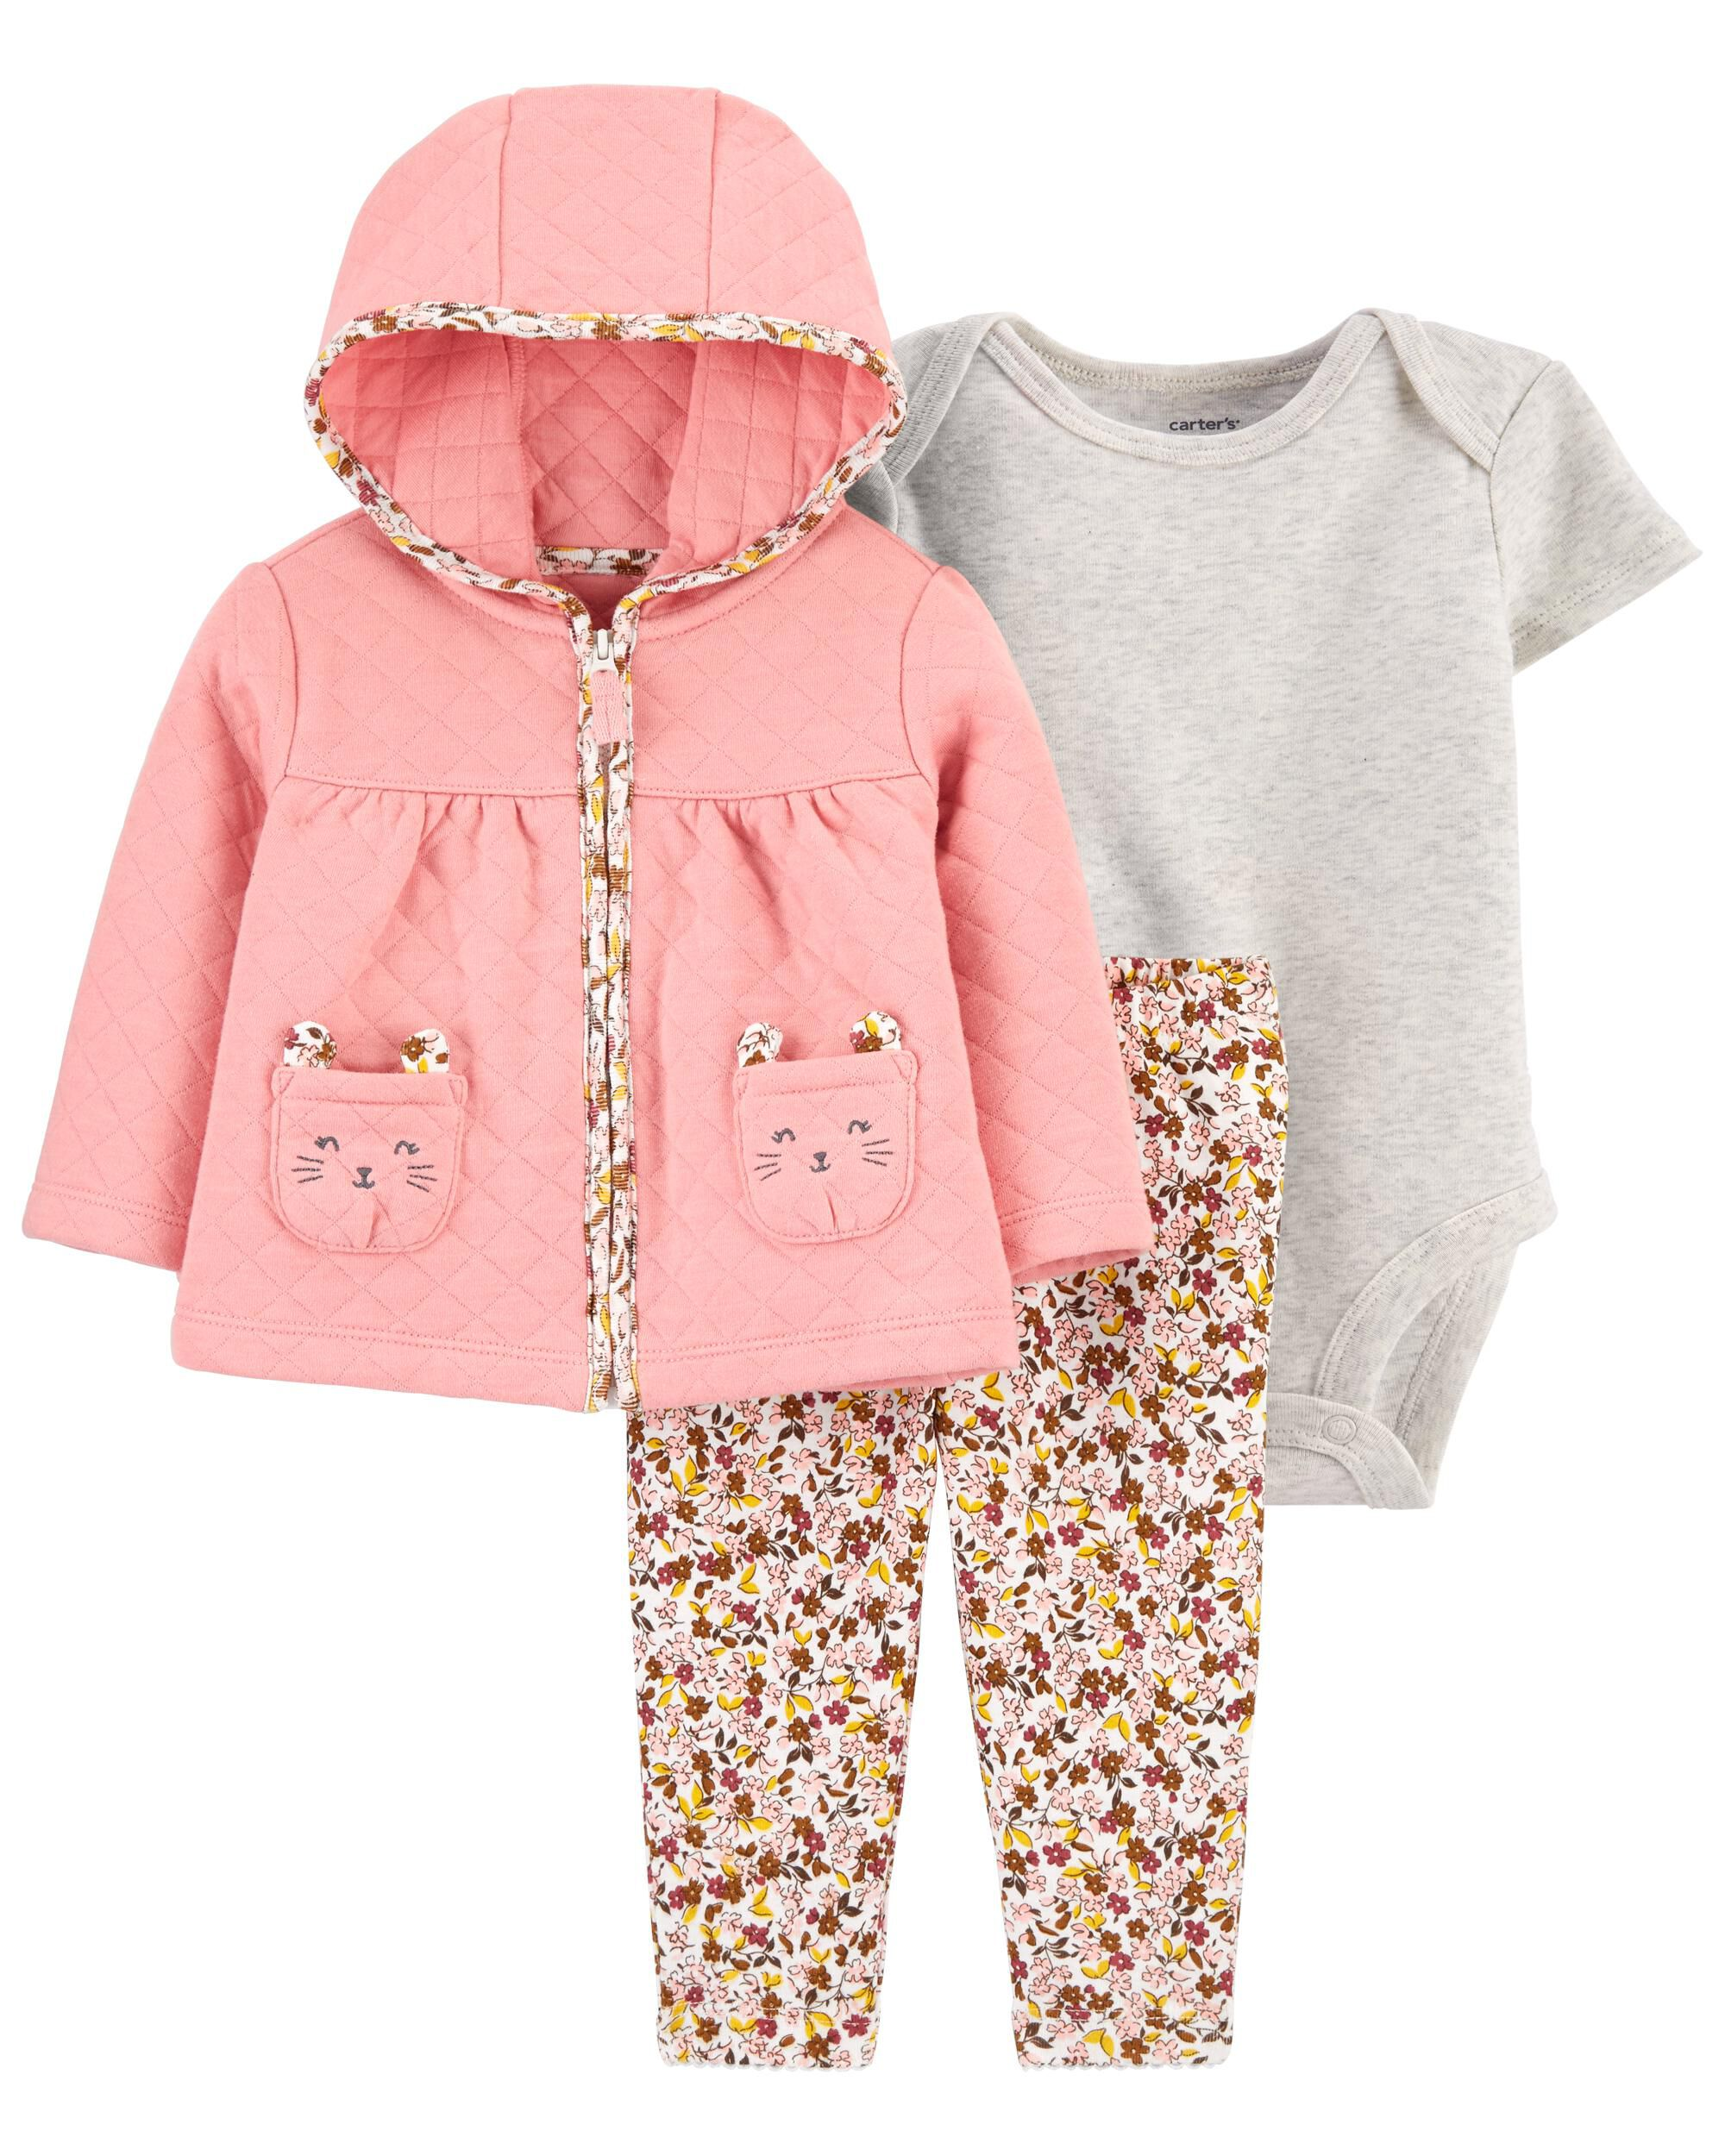 *CLEARANCE* 3-Piece Quilted Little Cardigan Set